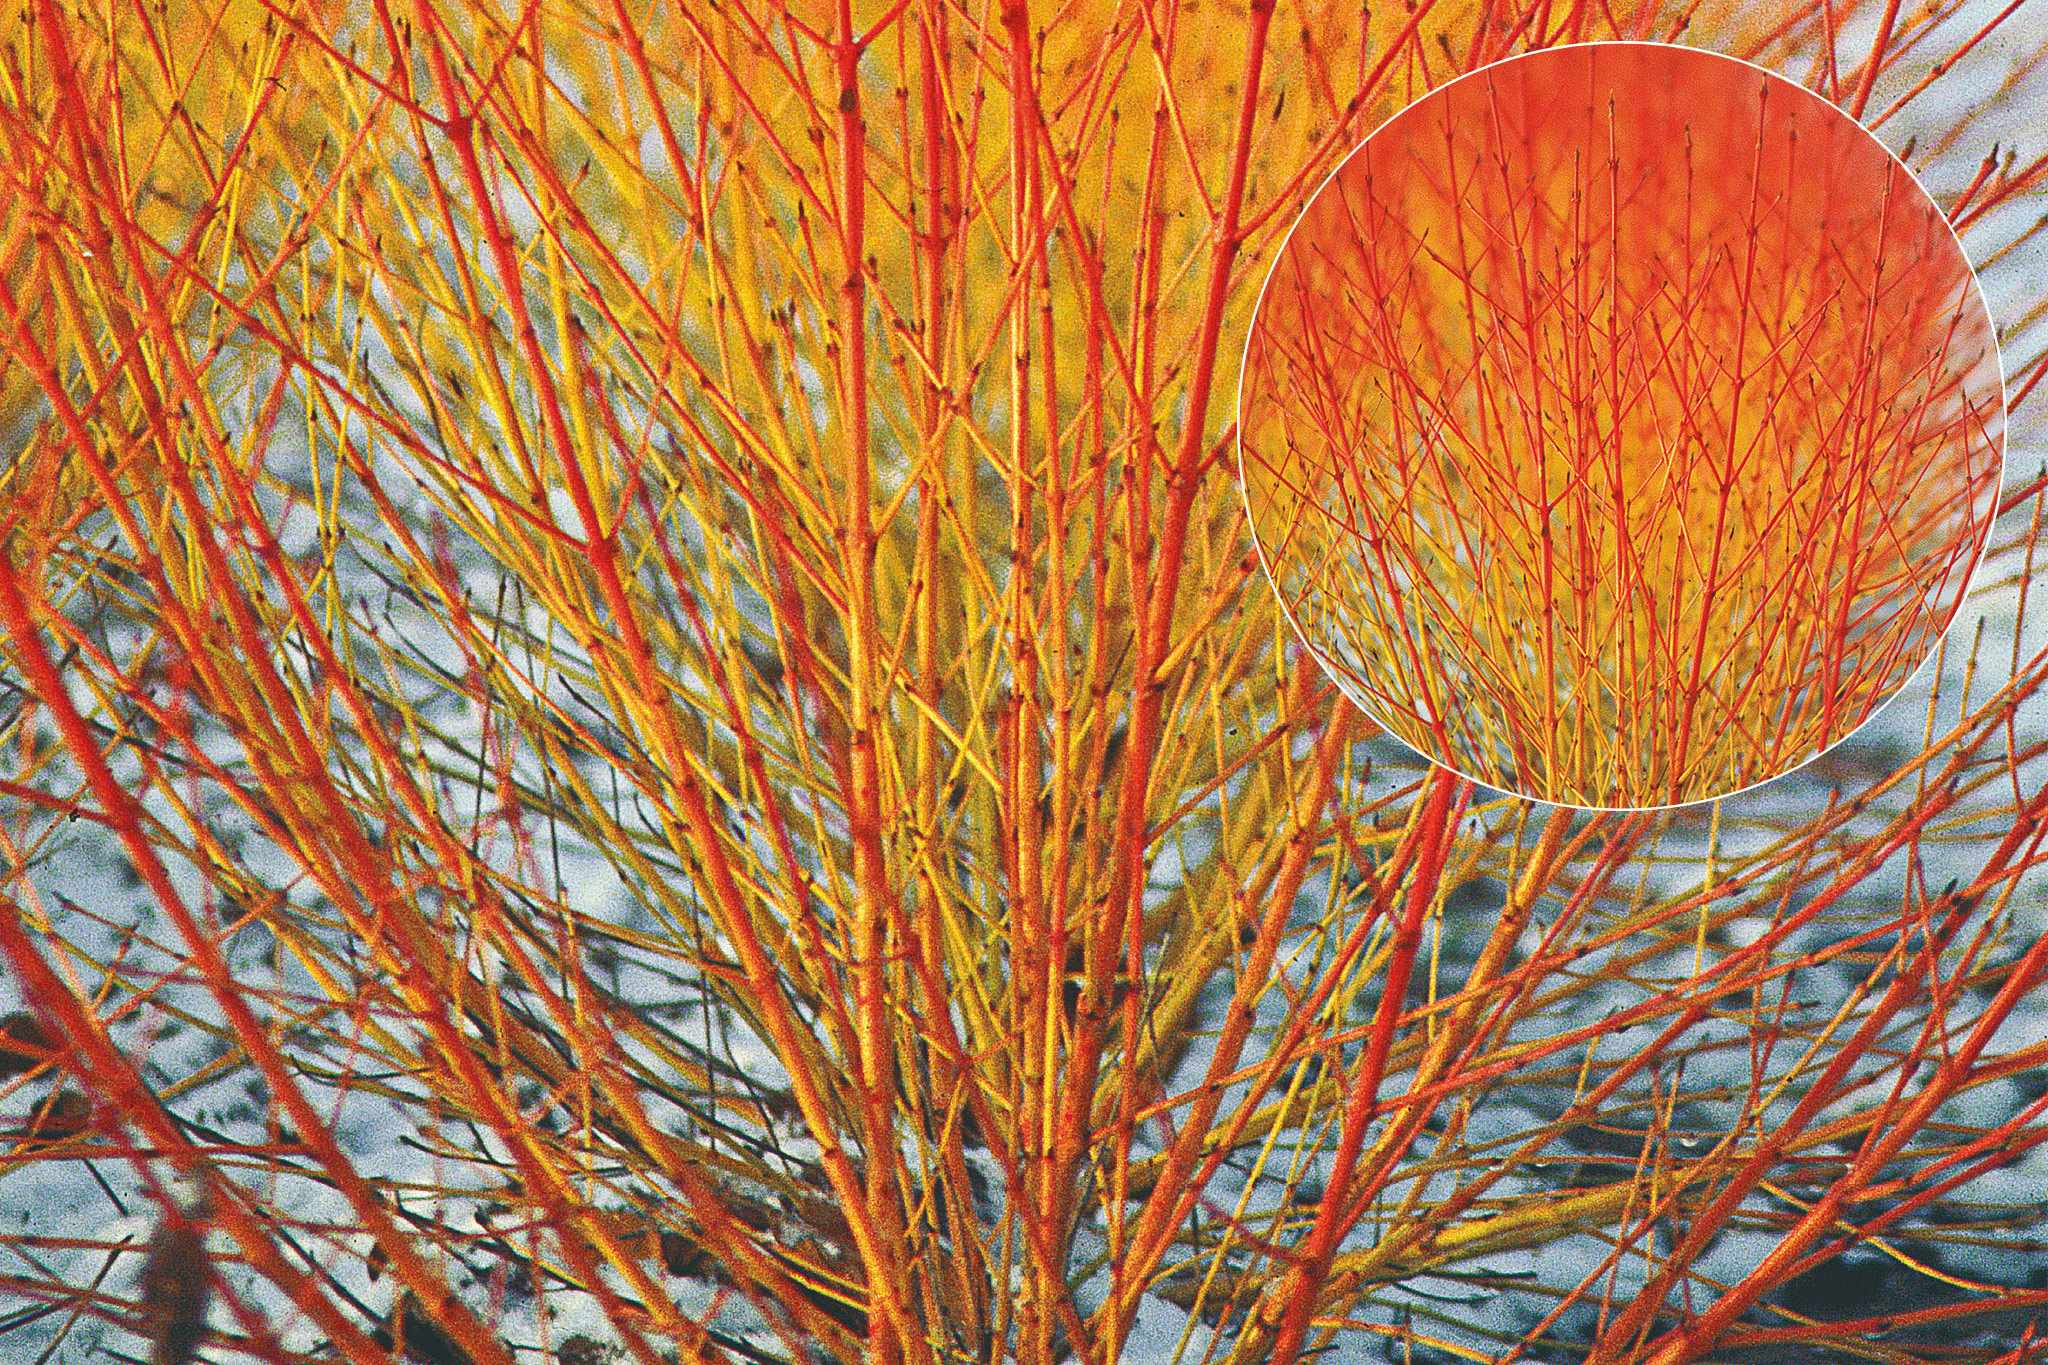 tandm-cornus-winter-flame-2048-1365